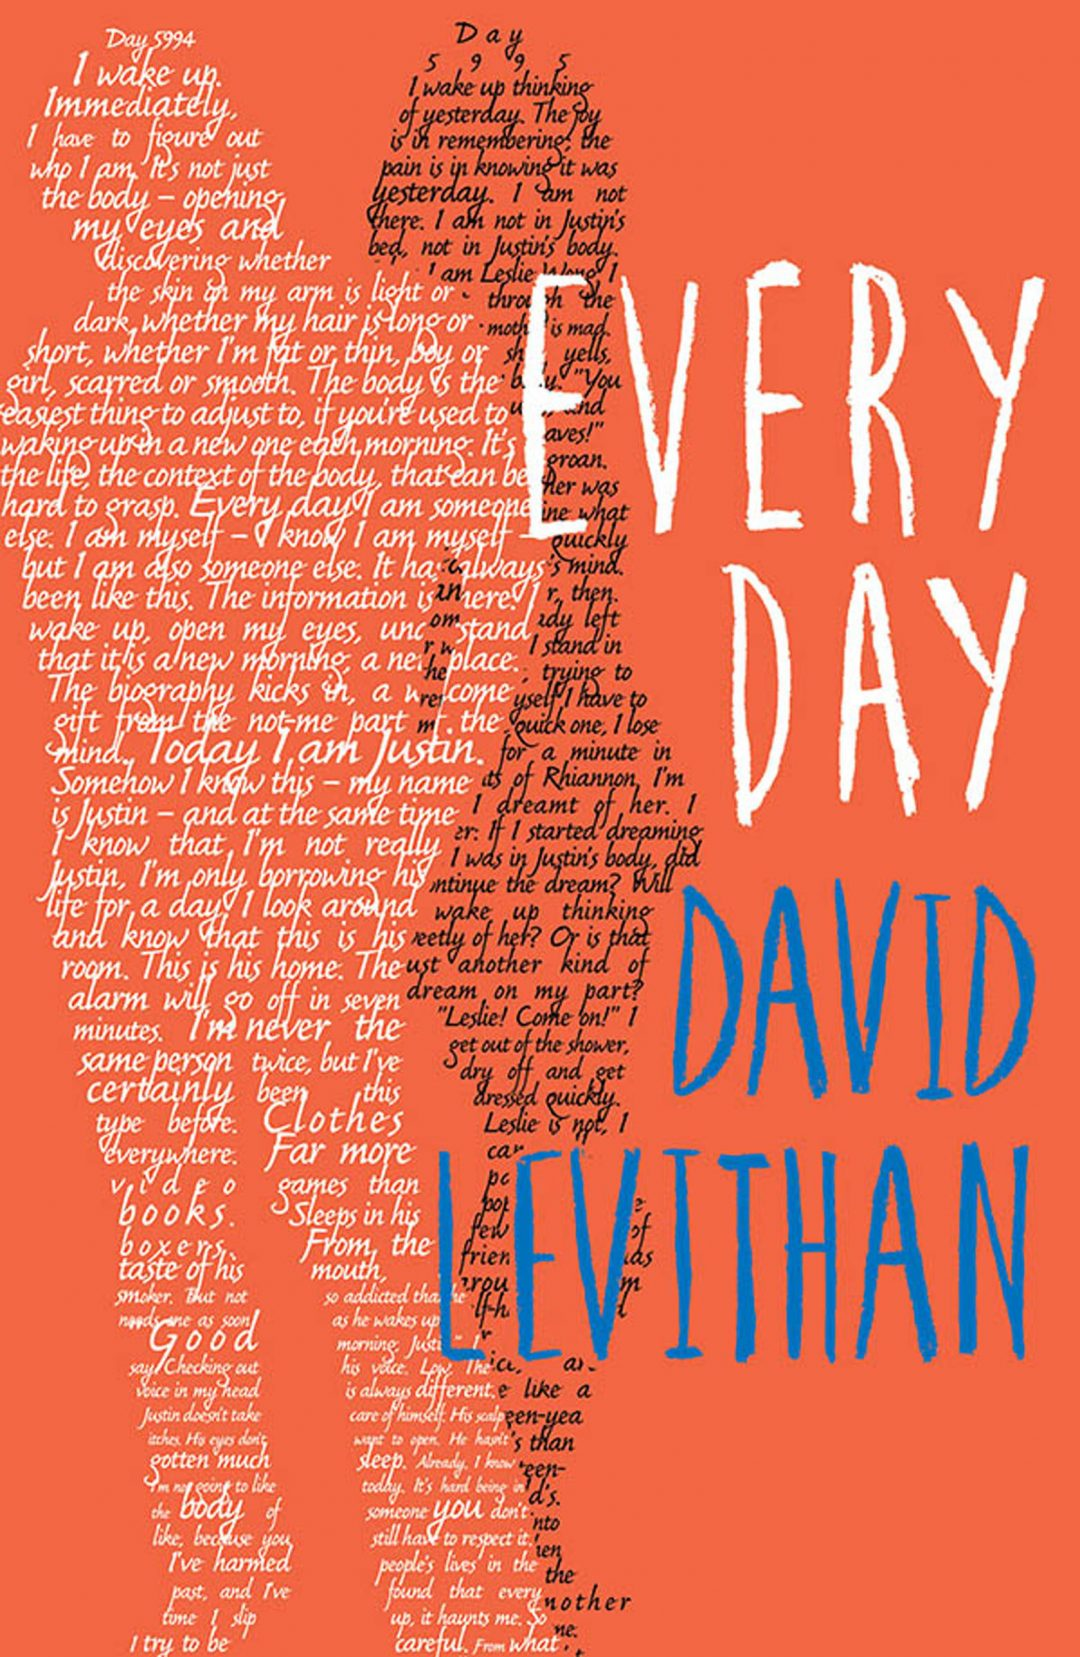 the love of a and rhiannon in the novel every day by david levithan Book review: another day by david levithan august 23, 2015 books another day , books , david levithan , every day , kayla farber , kenny fisher-marciano , review kfishermarciano another day, david levithan's companion to the new york times bestselling novel every day, could only be described as an innovative masterpiece.